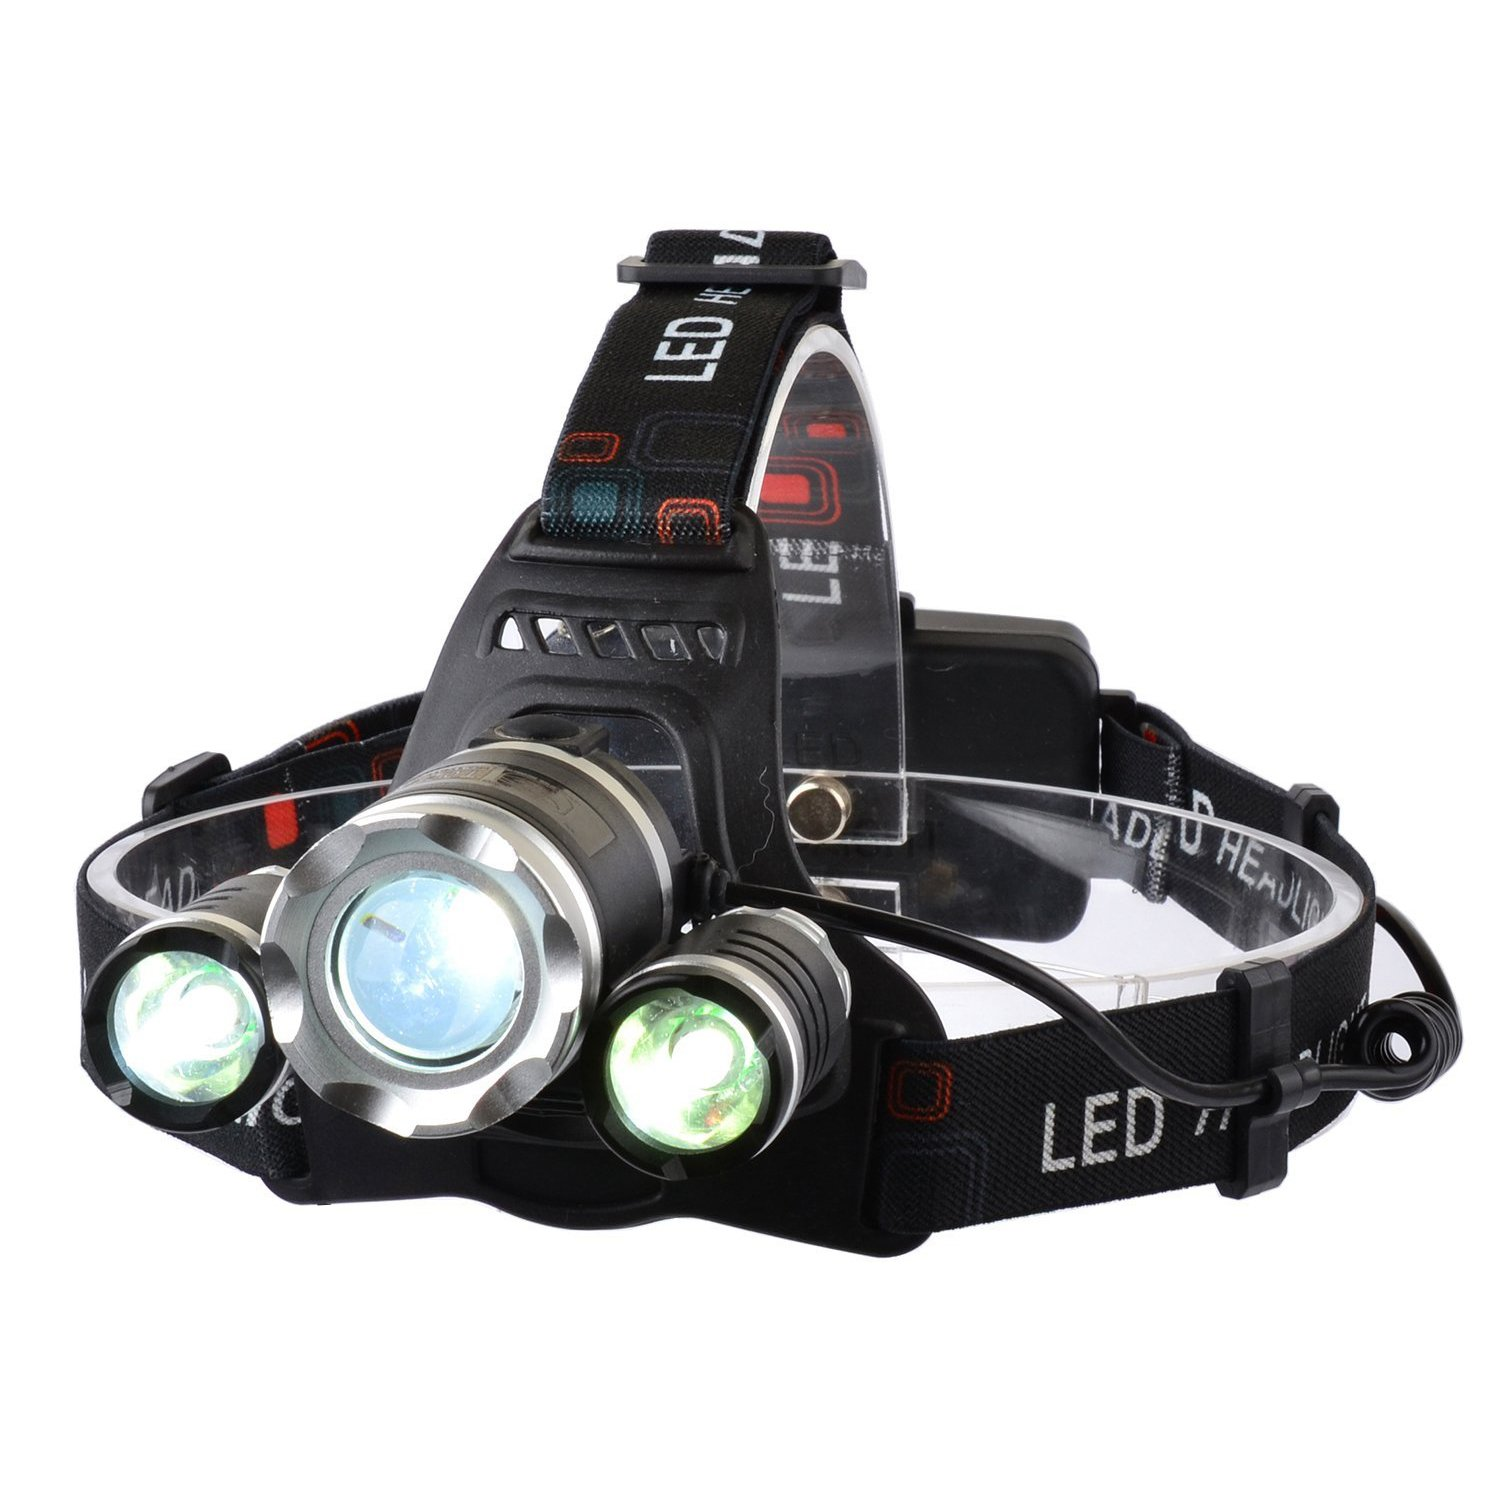 LED Headlamp Smiling Shark Bright 3 XML-T6 LED Headlight 5000 Lumen 4 Modes Zoomable Water Resistant Rechargeable Battery SS-T027B